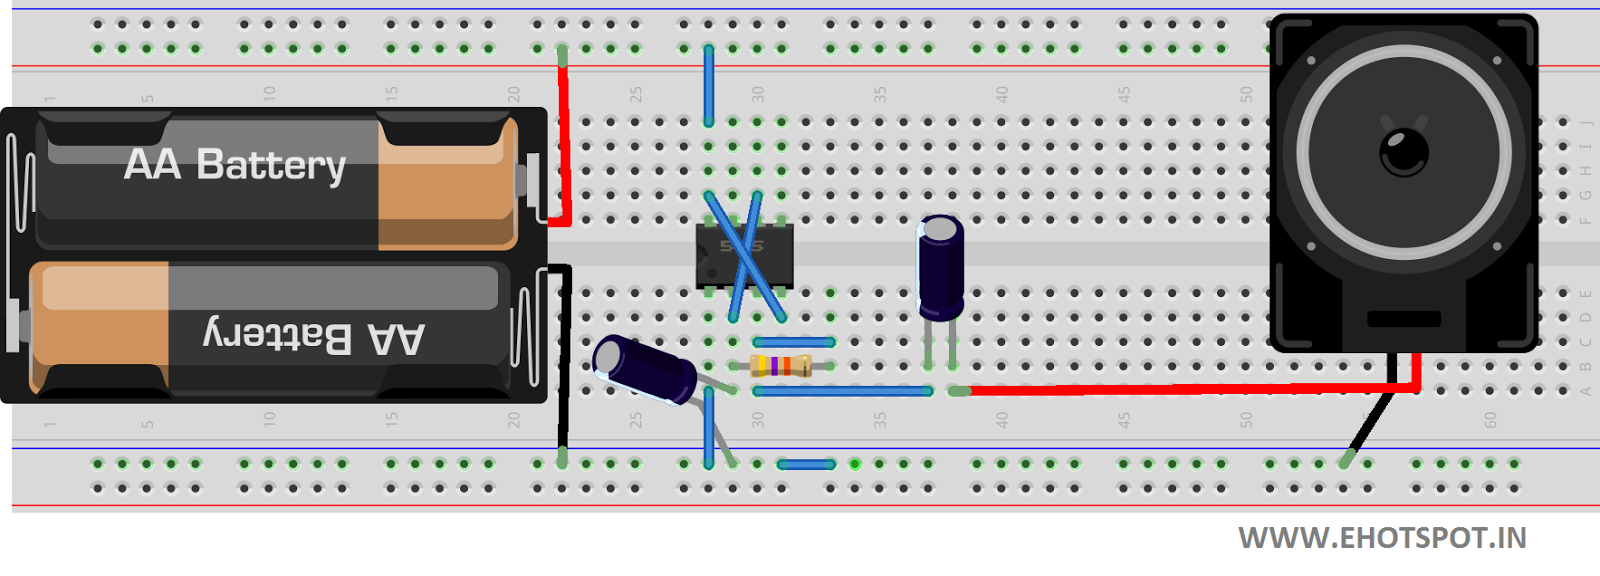 Ticking Bomb Sound Circuit Using 555 Ic Electronics Hotspot Timer Time Delay 9leave Pin 57 As There Is No Use Of Them In This 10turn On Power To And Enjoy The Effect